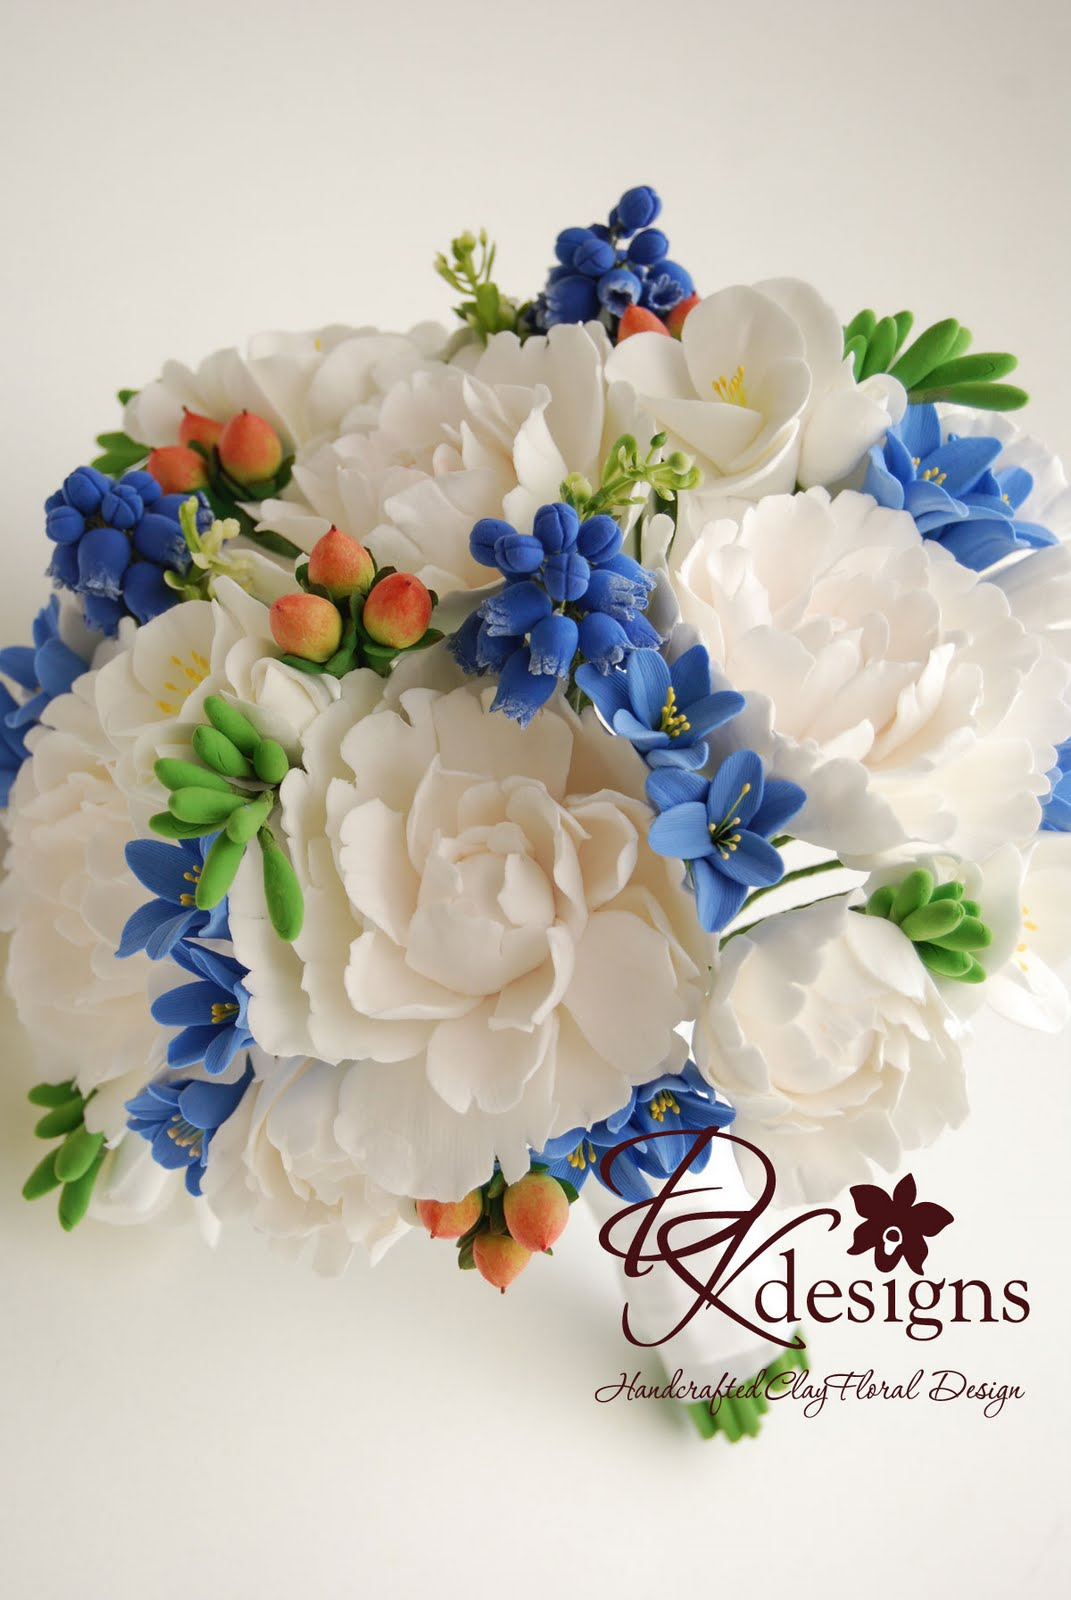 Dk designs peonies grape hyacinth blue hyacinth and hipericum she wanted for her bouquet white peonies blue hyacinth white freesia grape hyacinth and reddish green hipericum berries this is how it turned out dhlflorist Choice Image